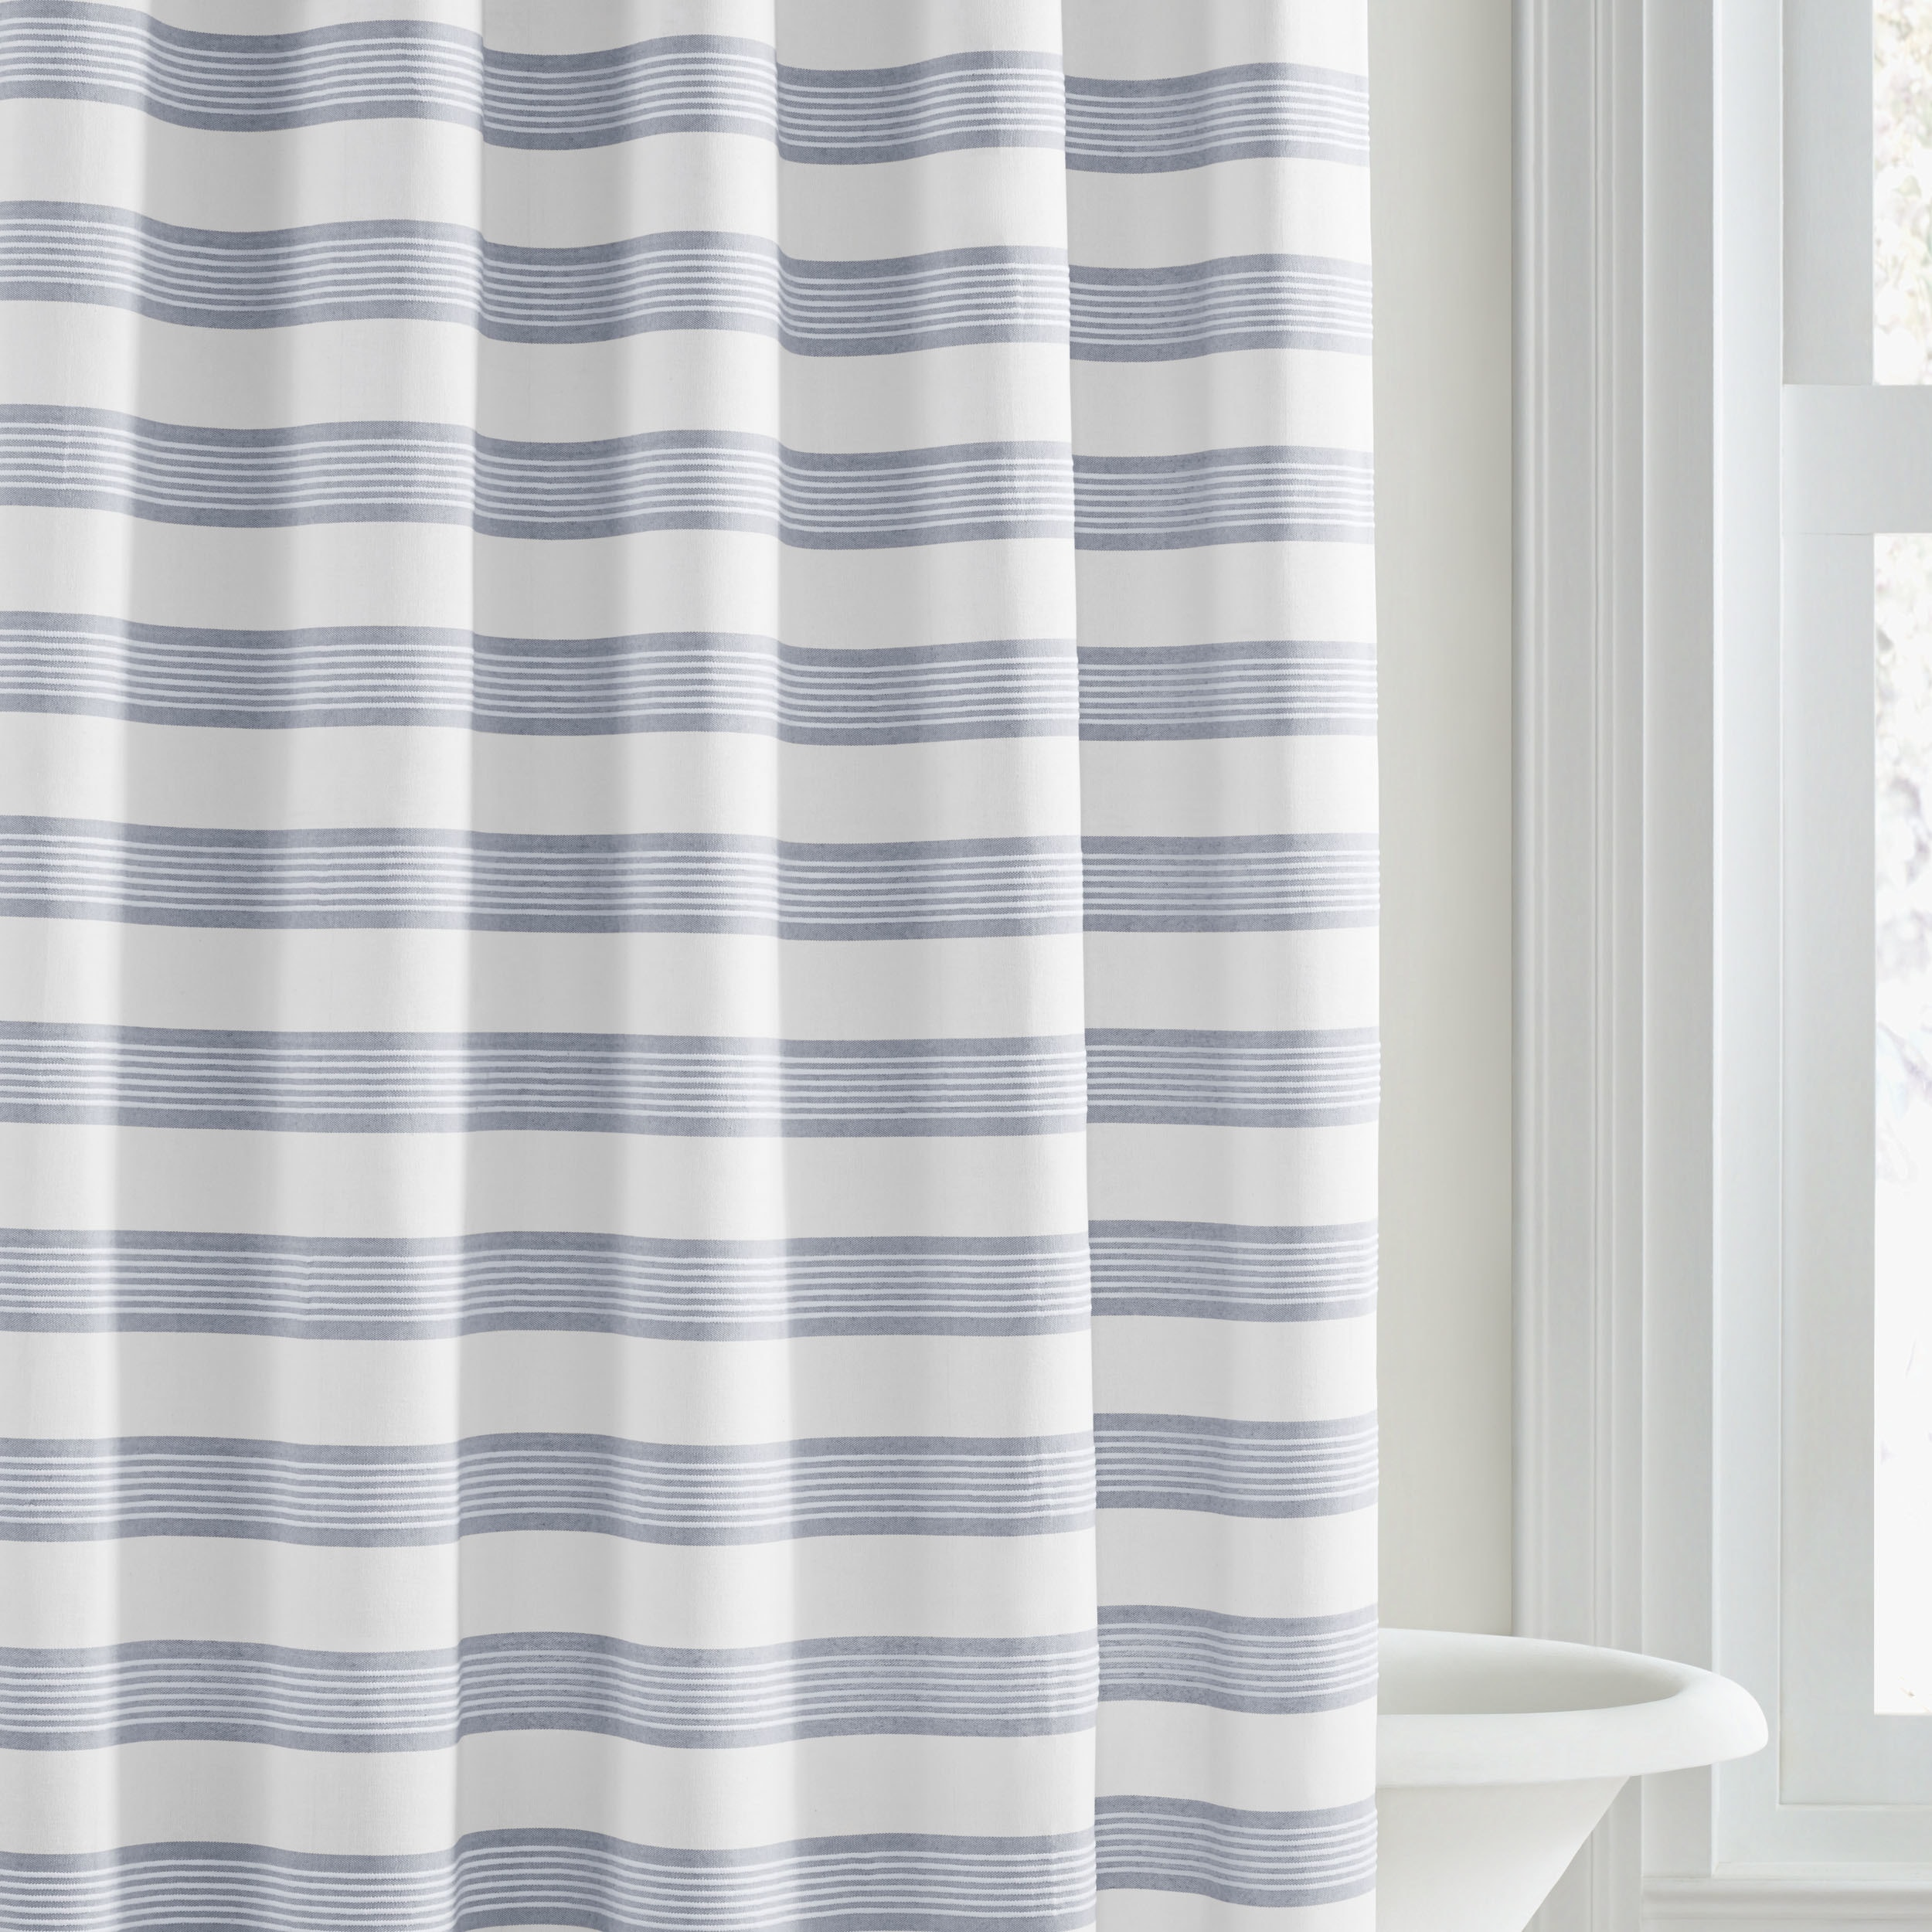 Buy Nautical & Coastal Shower Curtains Online at Overstock.com | Our ...